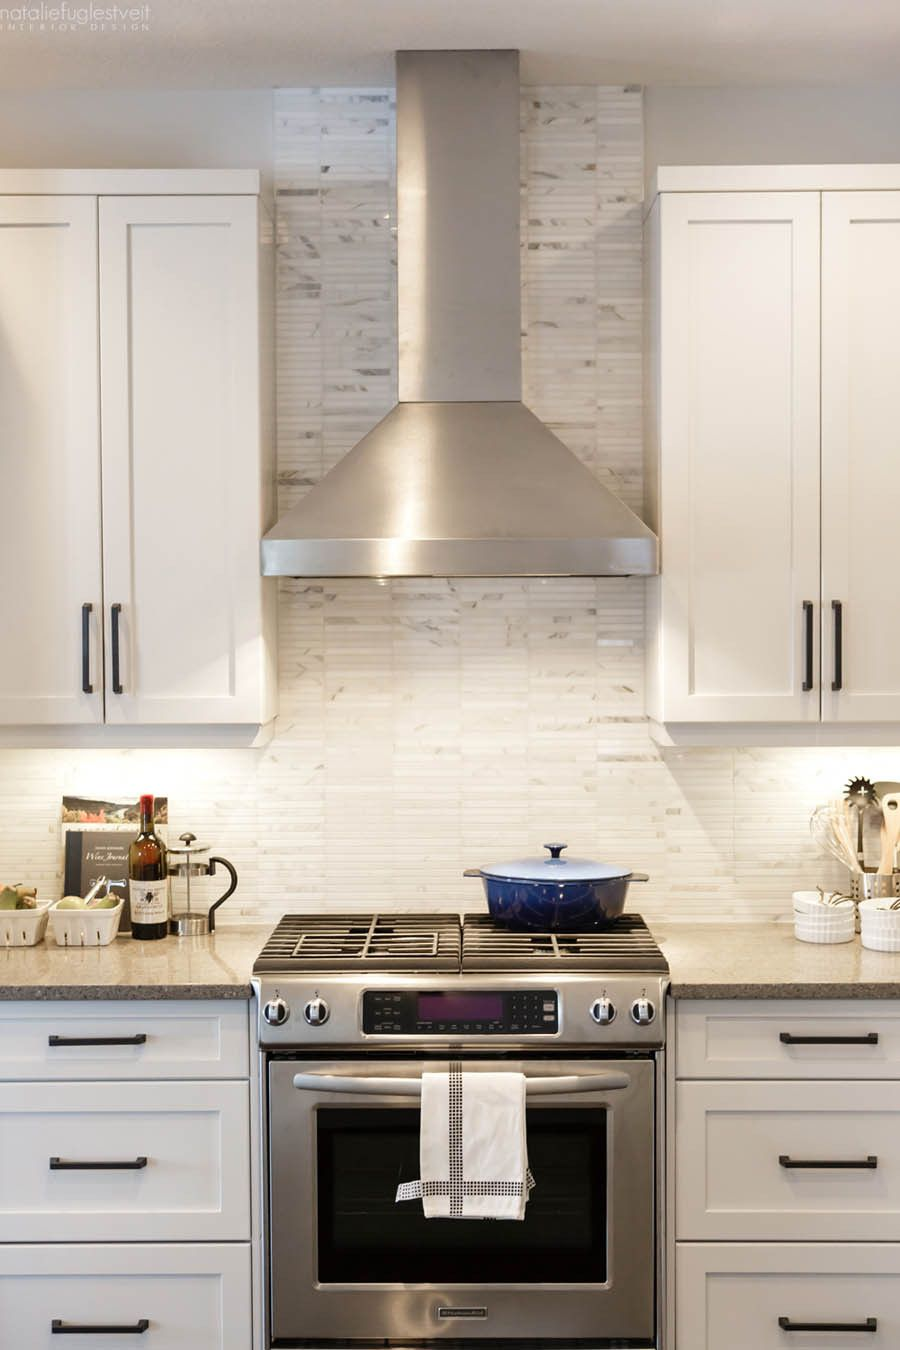 Lovely Rustic Modern Kitchen Ideas White Cabinets A Rustic Modern White Kitchen By Calg In 2020 White Modern Kitchen Rustic Kitchen Cabinets Kitchen Renovation